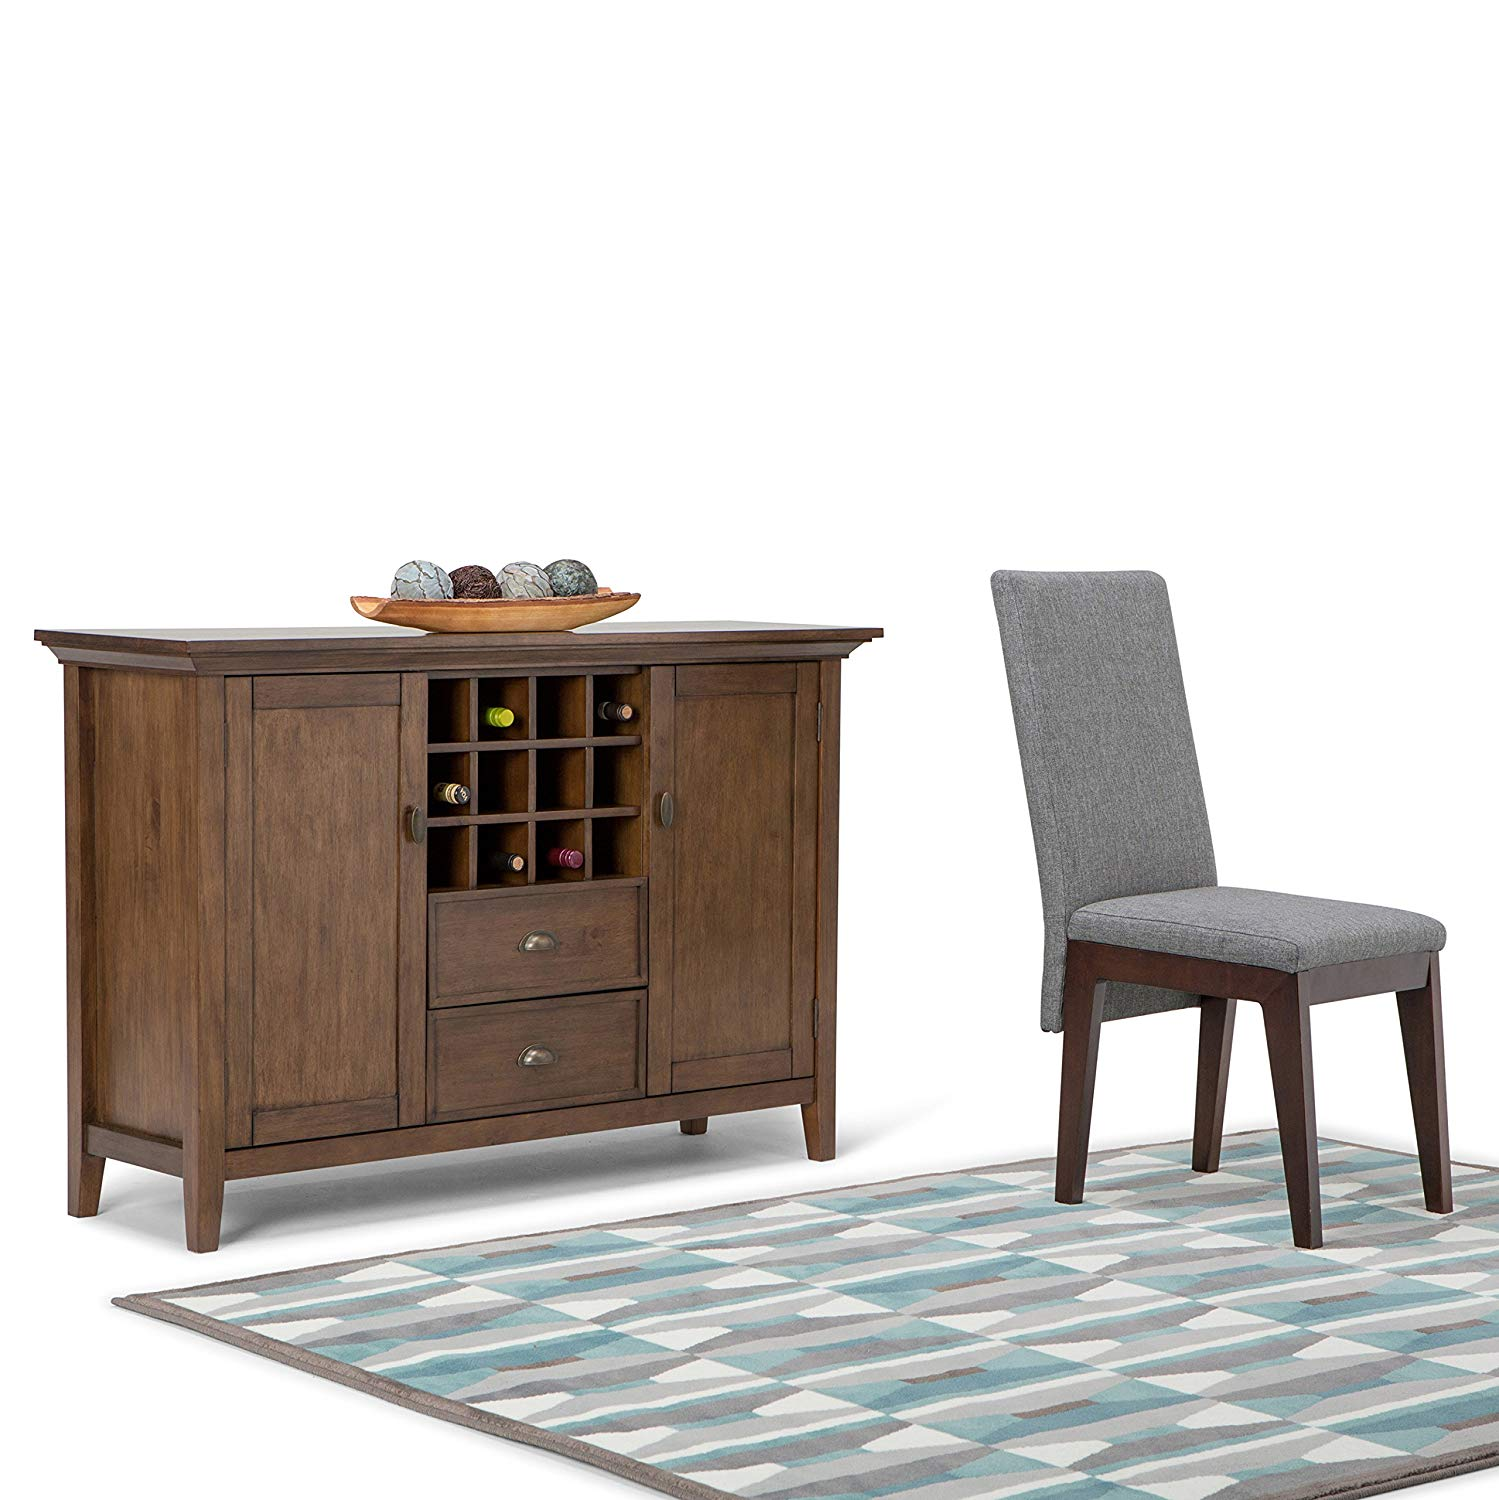 simpli home redmond solid wood sideboard avenue six piece chair and accent table set buffet credenza winerack rustic natural aged brown kitchen dining unfinished furniture the